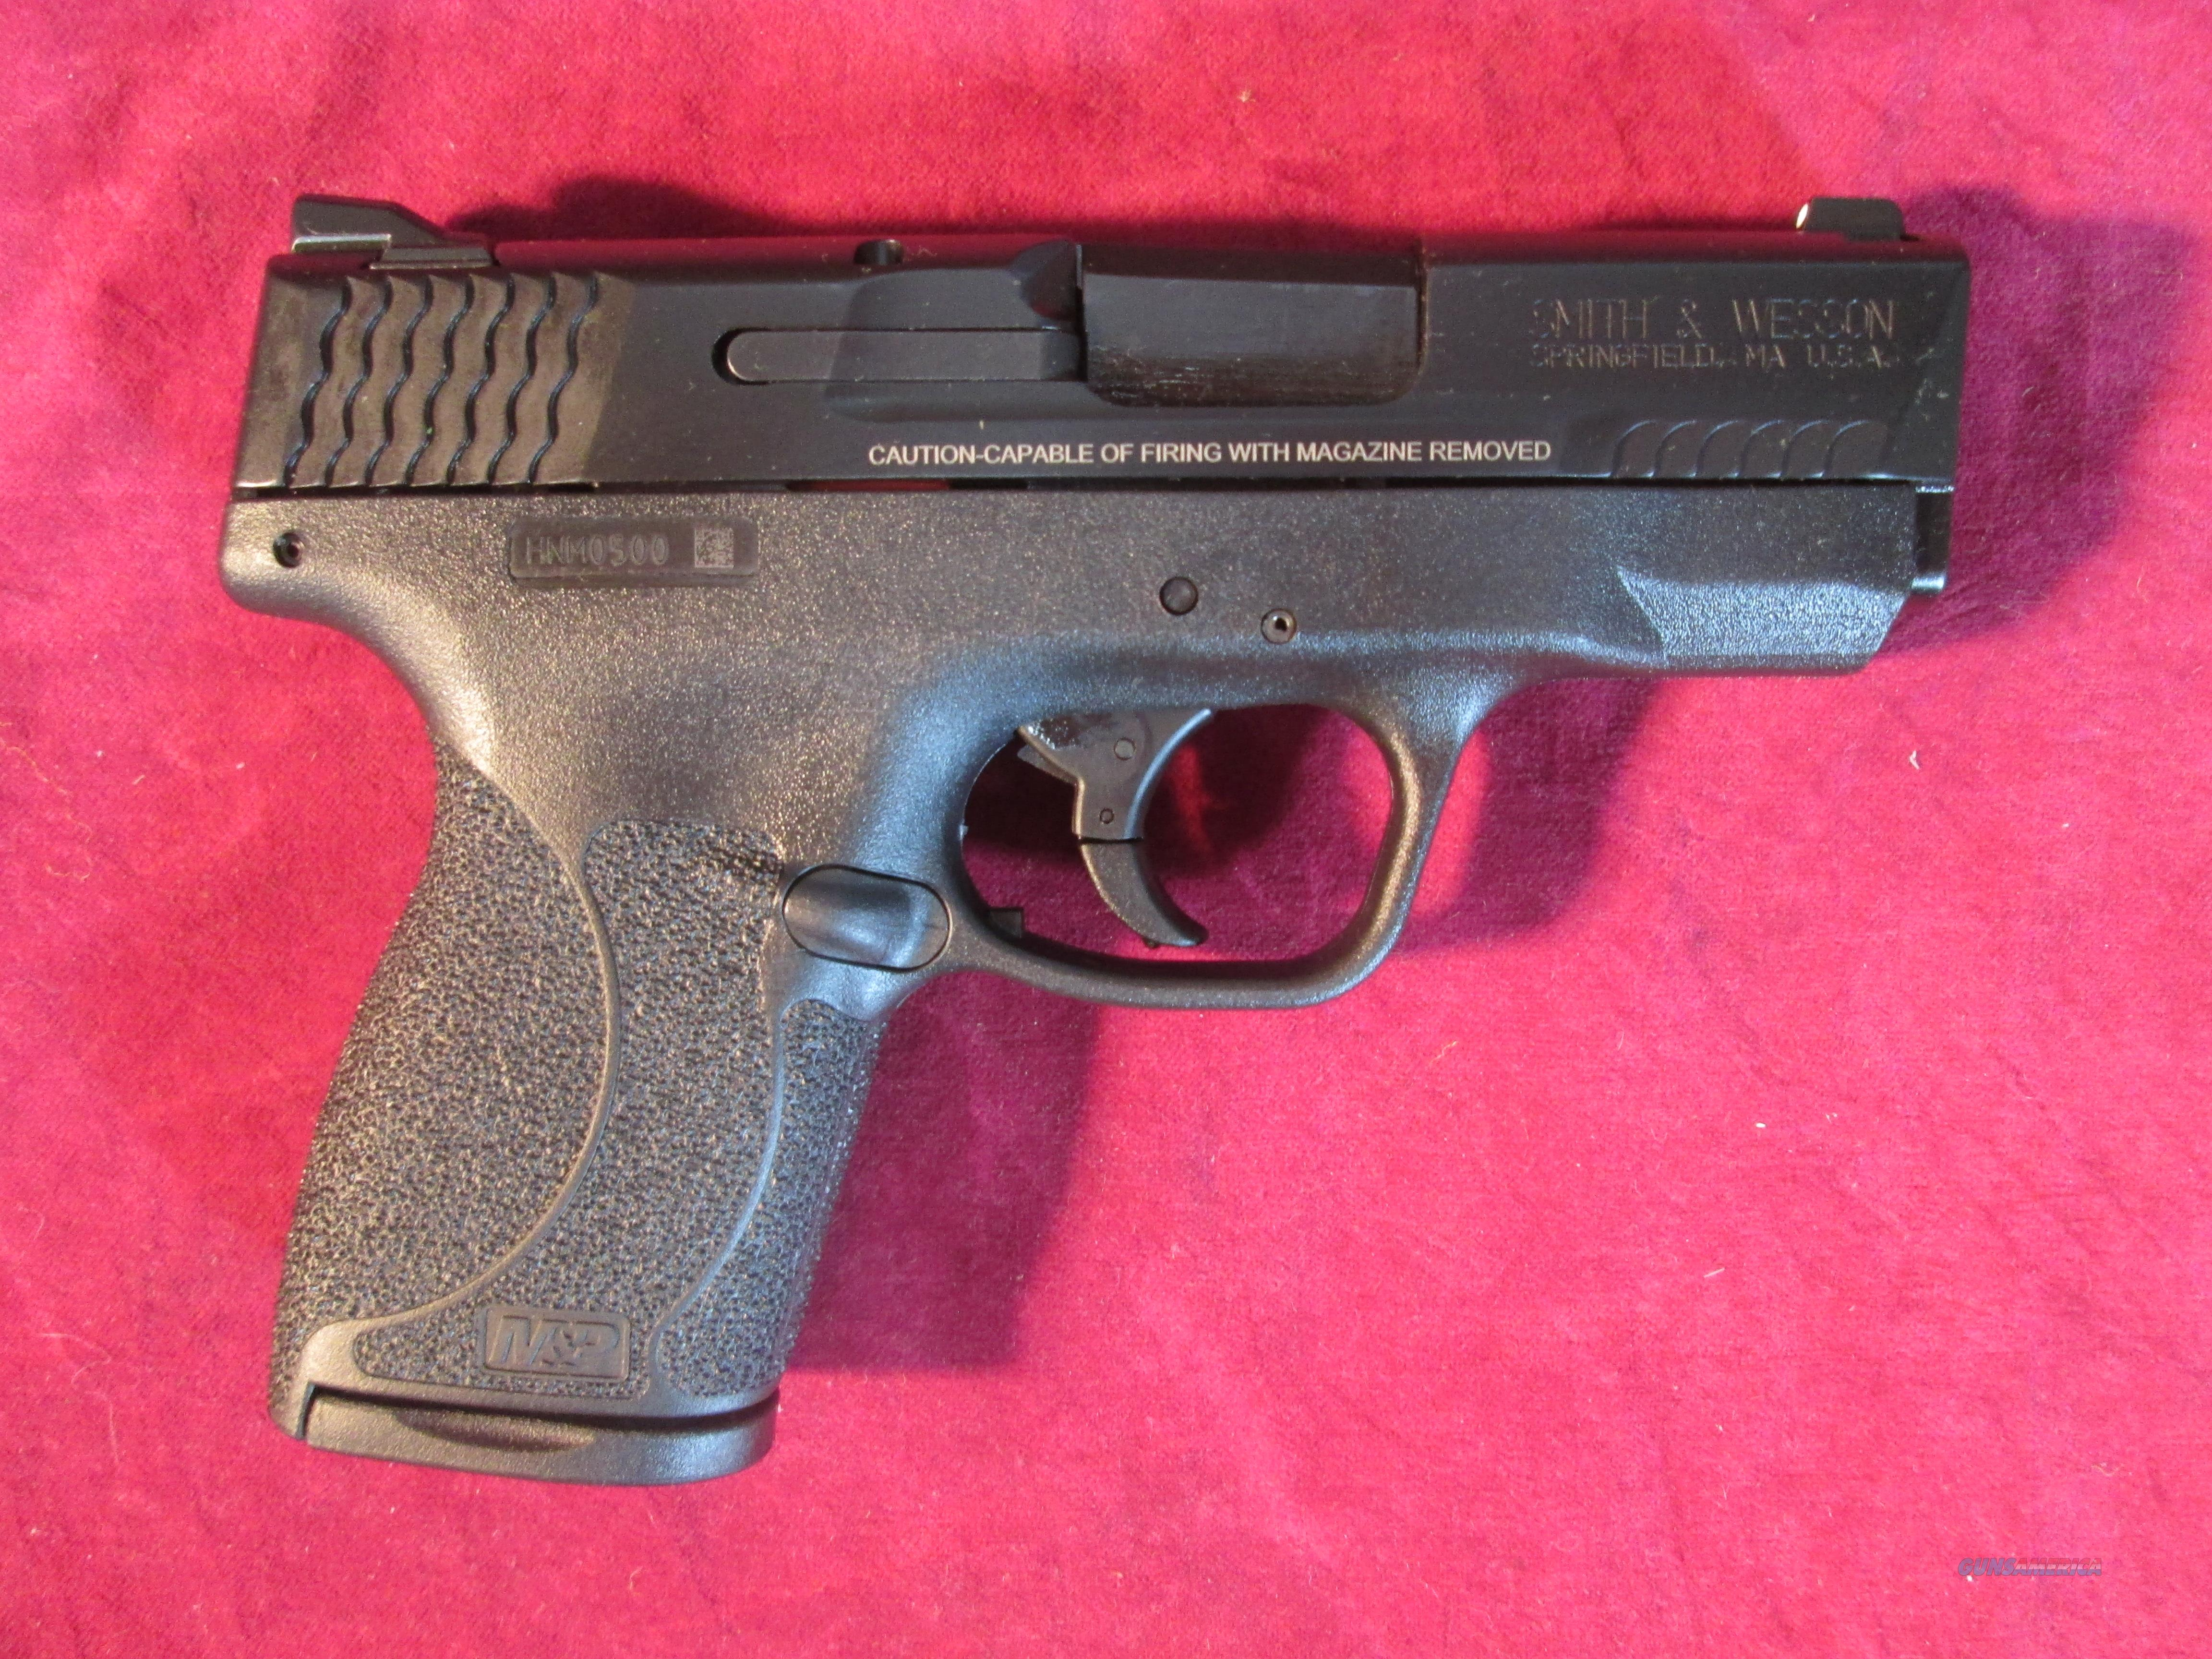 SMITH AND WESSON M&P SHIELD 45ACP W/ SAFETY NEW (180022)   Guns > Pistols > Smith & Wesson Pistols - Autos > Shield